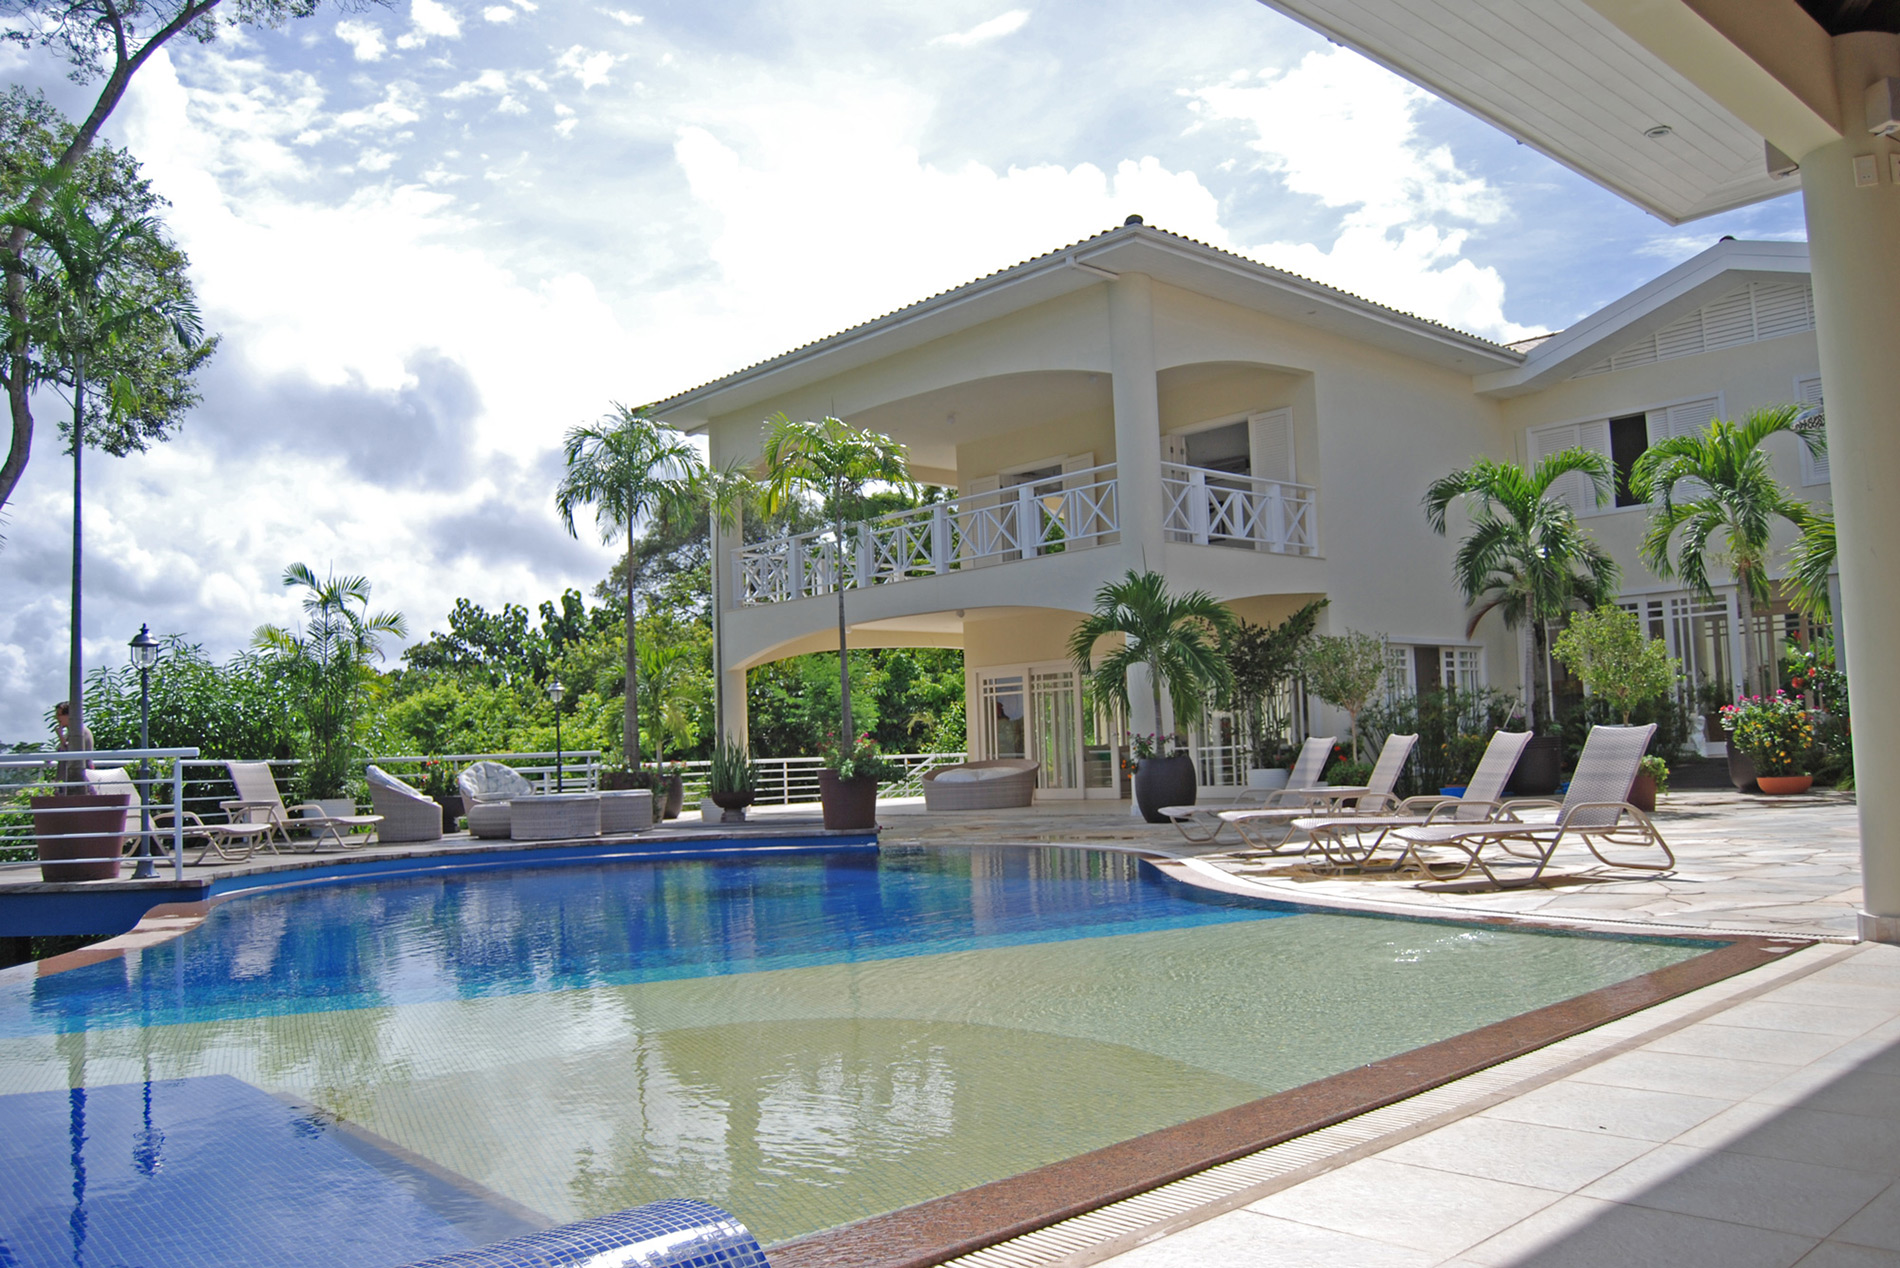 Spectacular mansion in front of lake for sale in Encontro das Águas